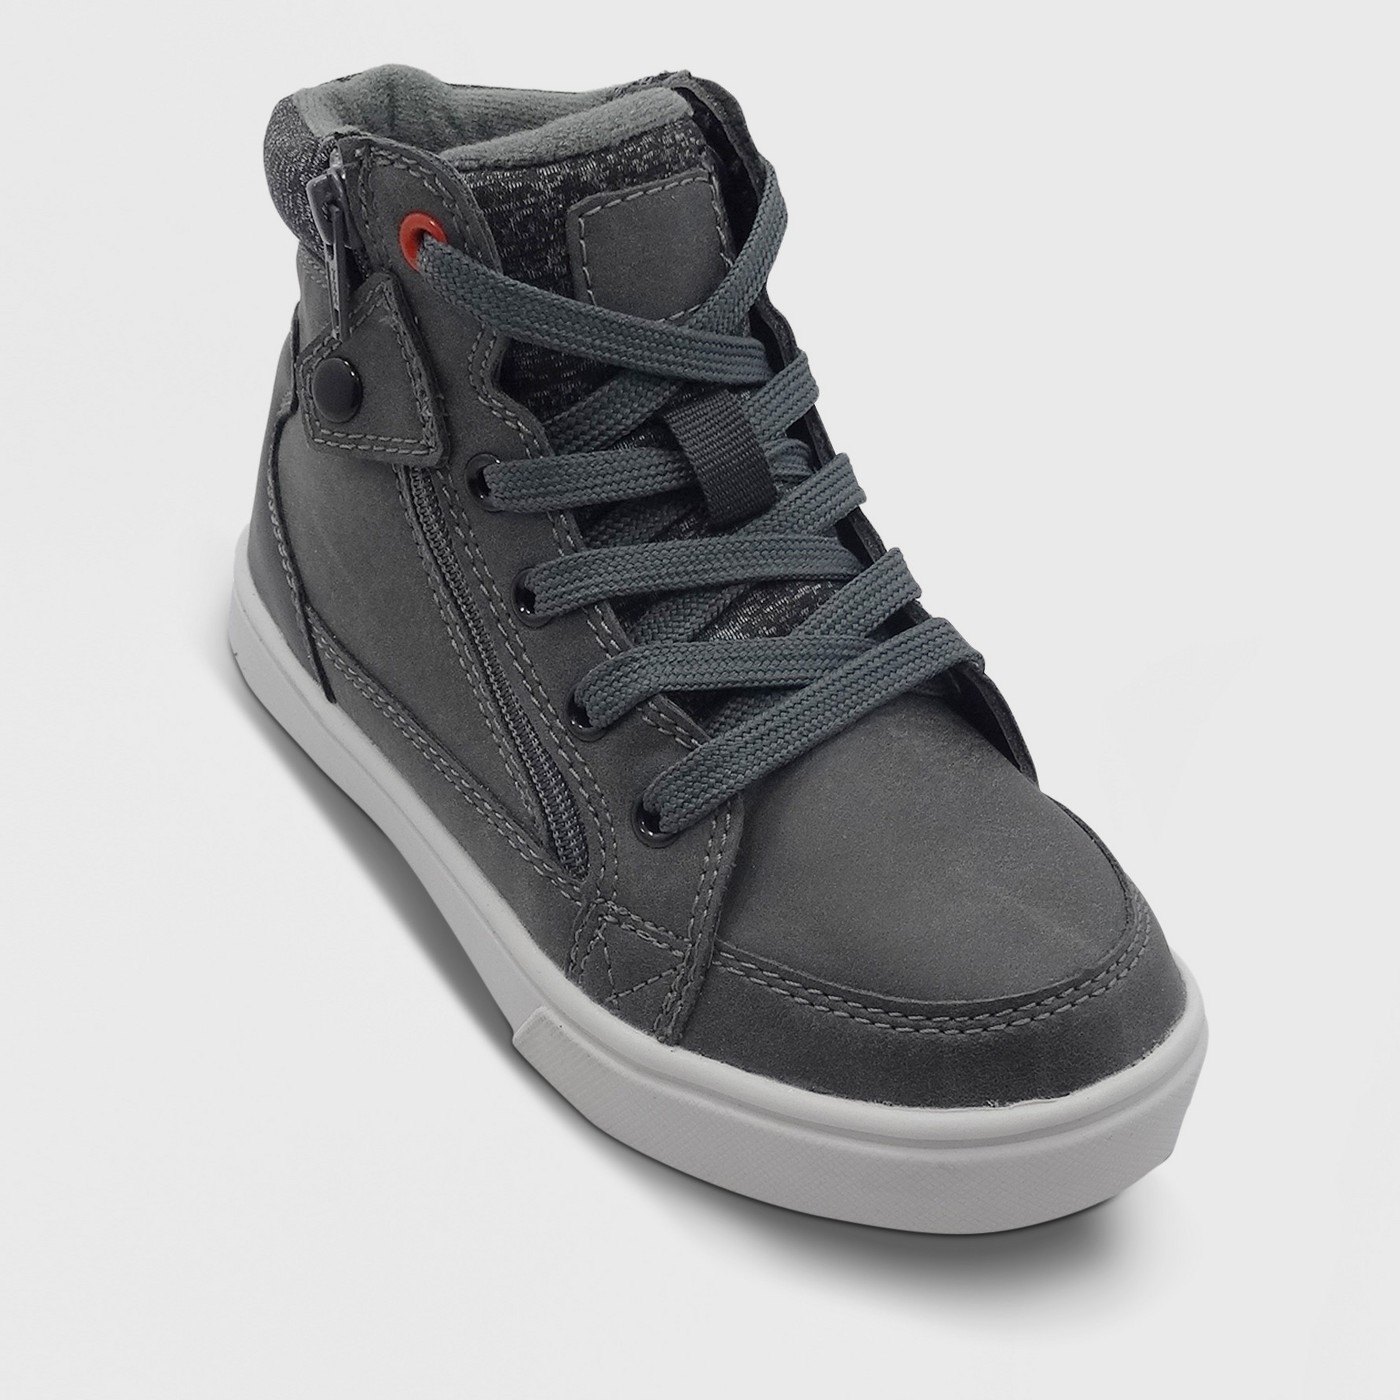 Boys' High-Top Sneakers - $25